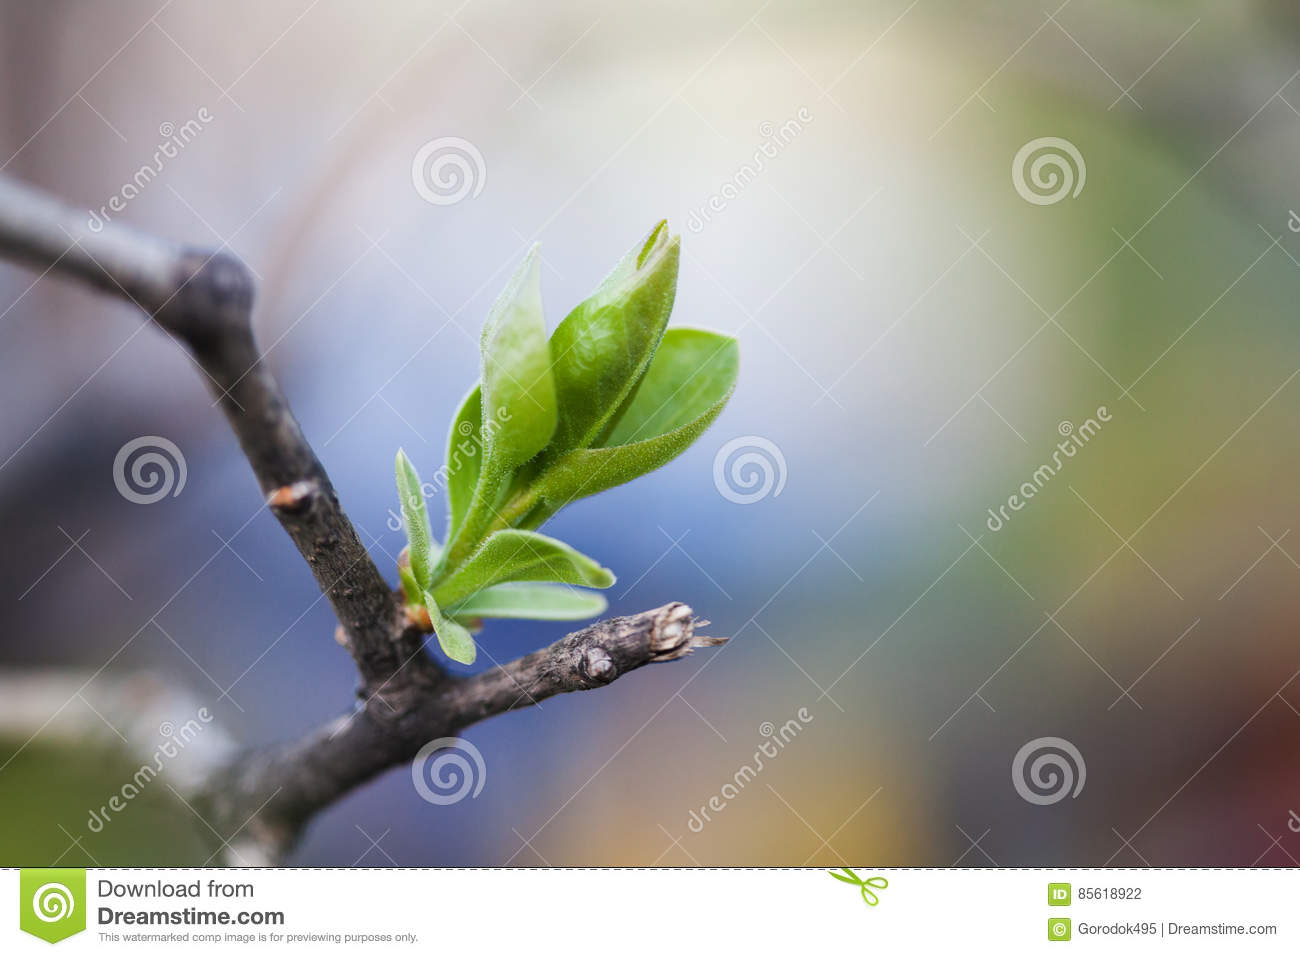 New life concept green leaf and broken tree branch. spring time nature concept. Soft focus, macro view